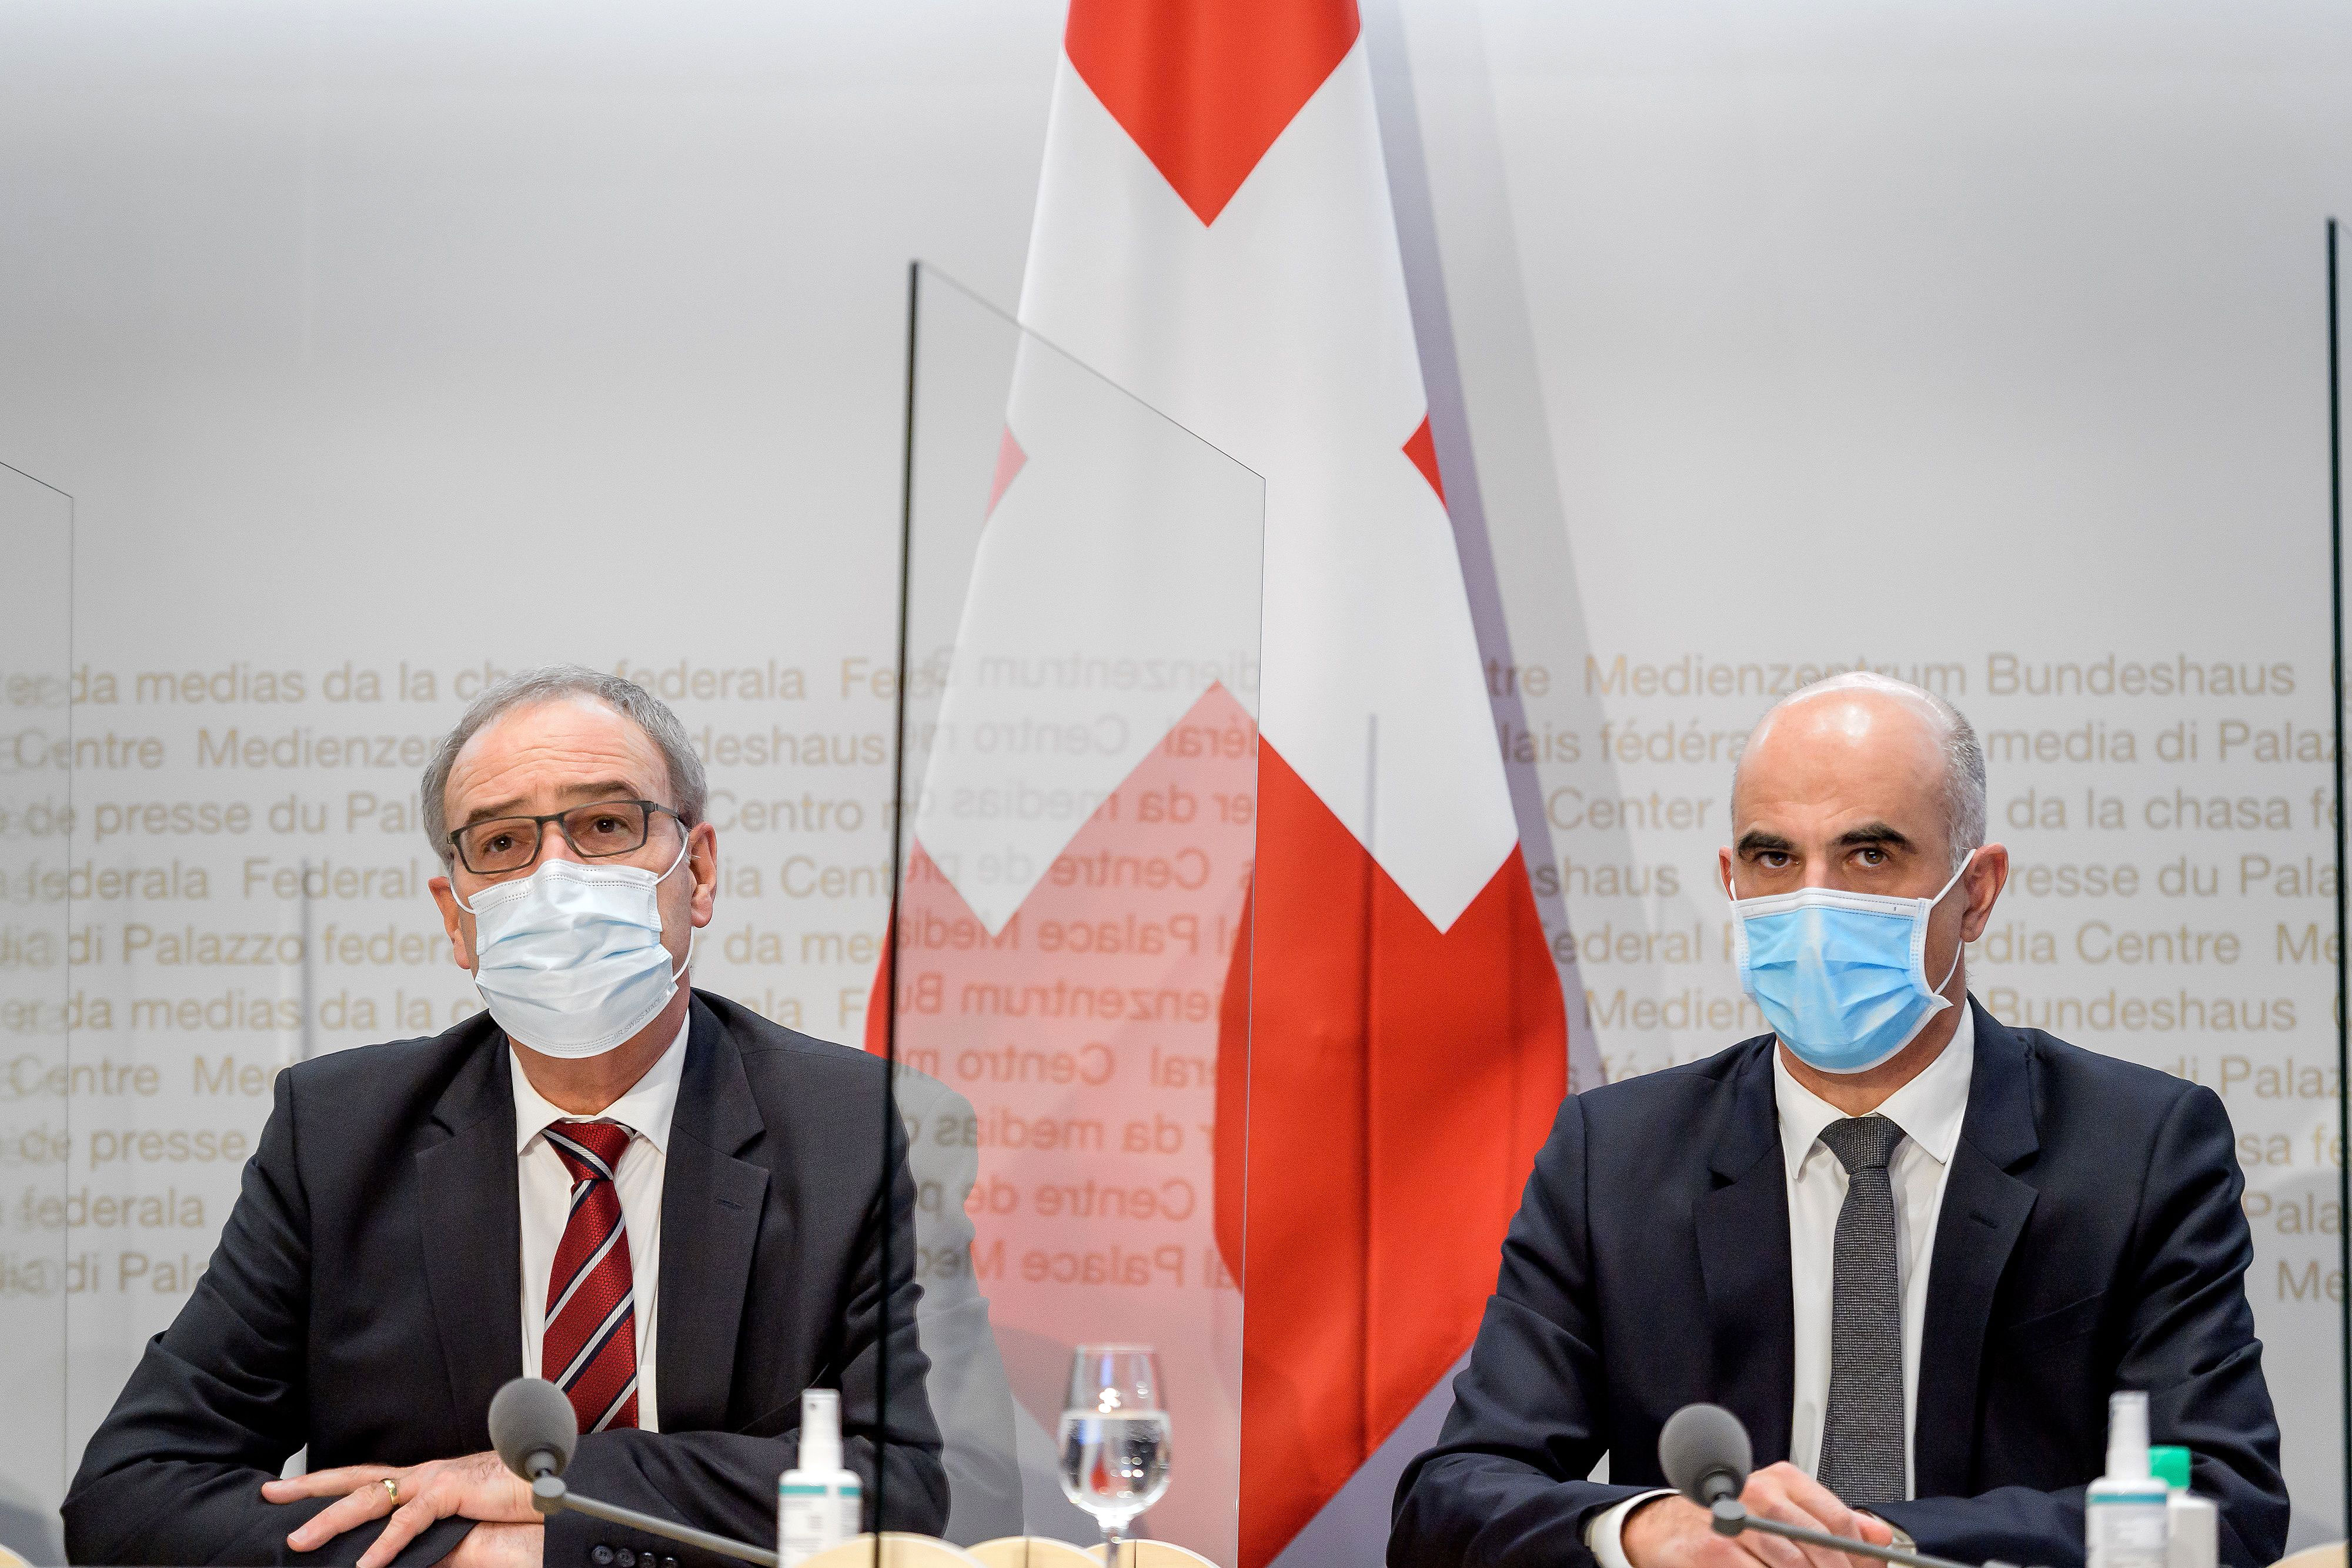 President of Switzerland Guy Parmelin, left, and Federal Councillor Alain Berset attend a press conference on January 13 in Bern, Switzerland.